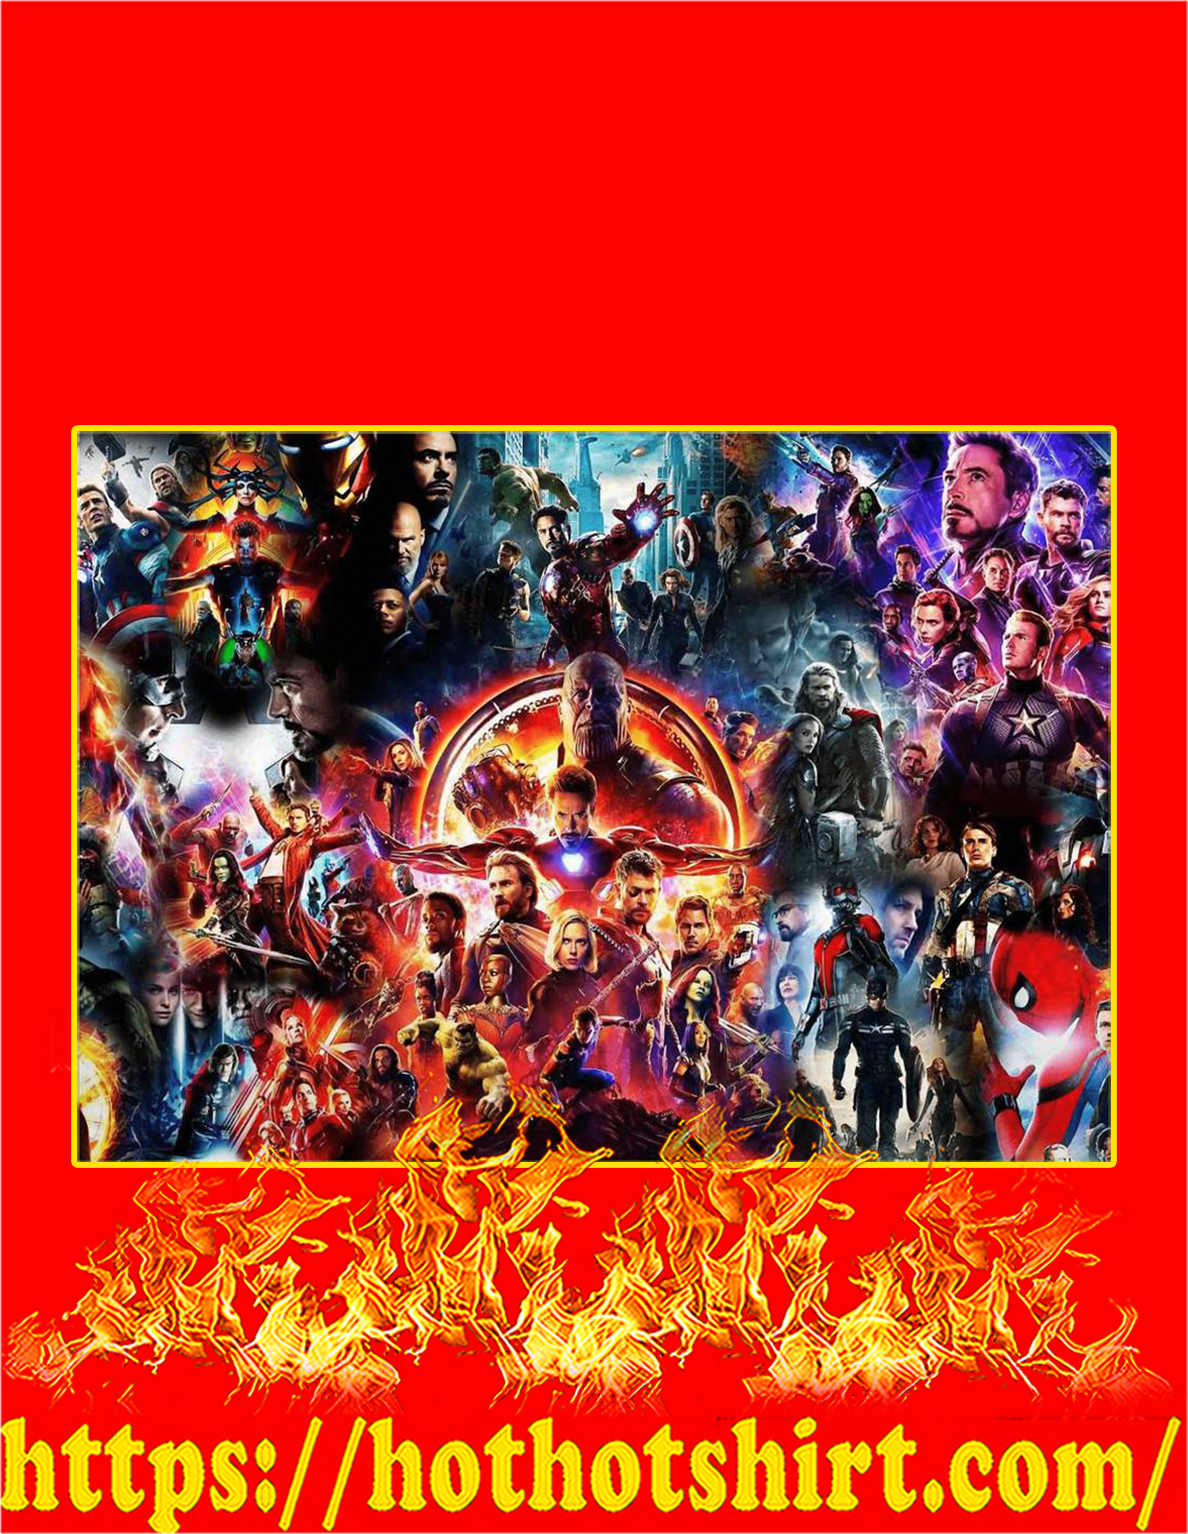 The Avengers End Game Poster - A4